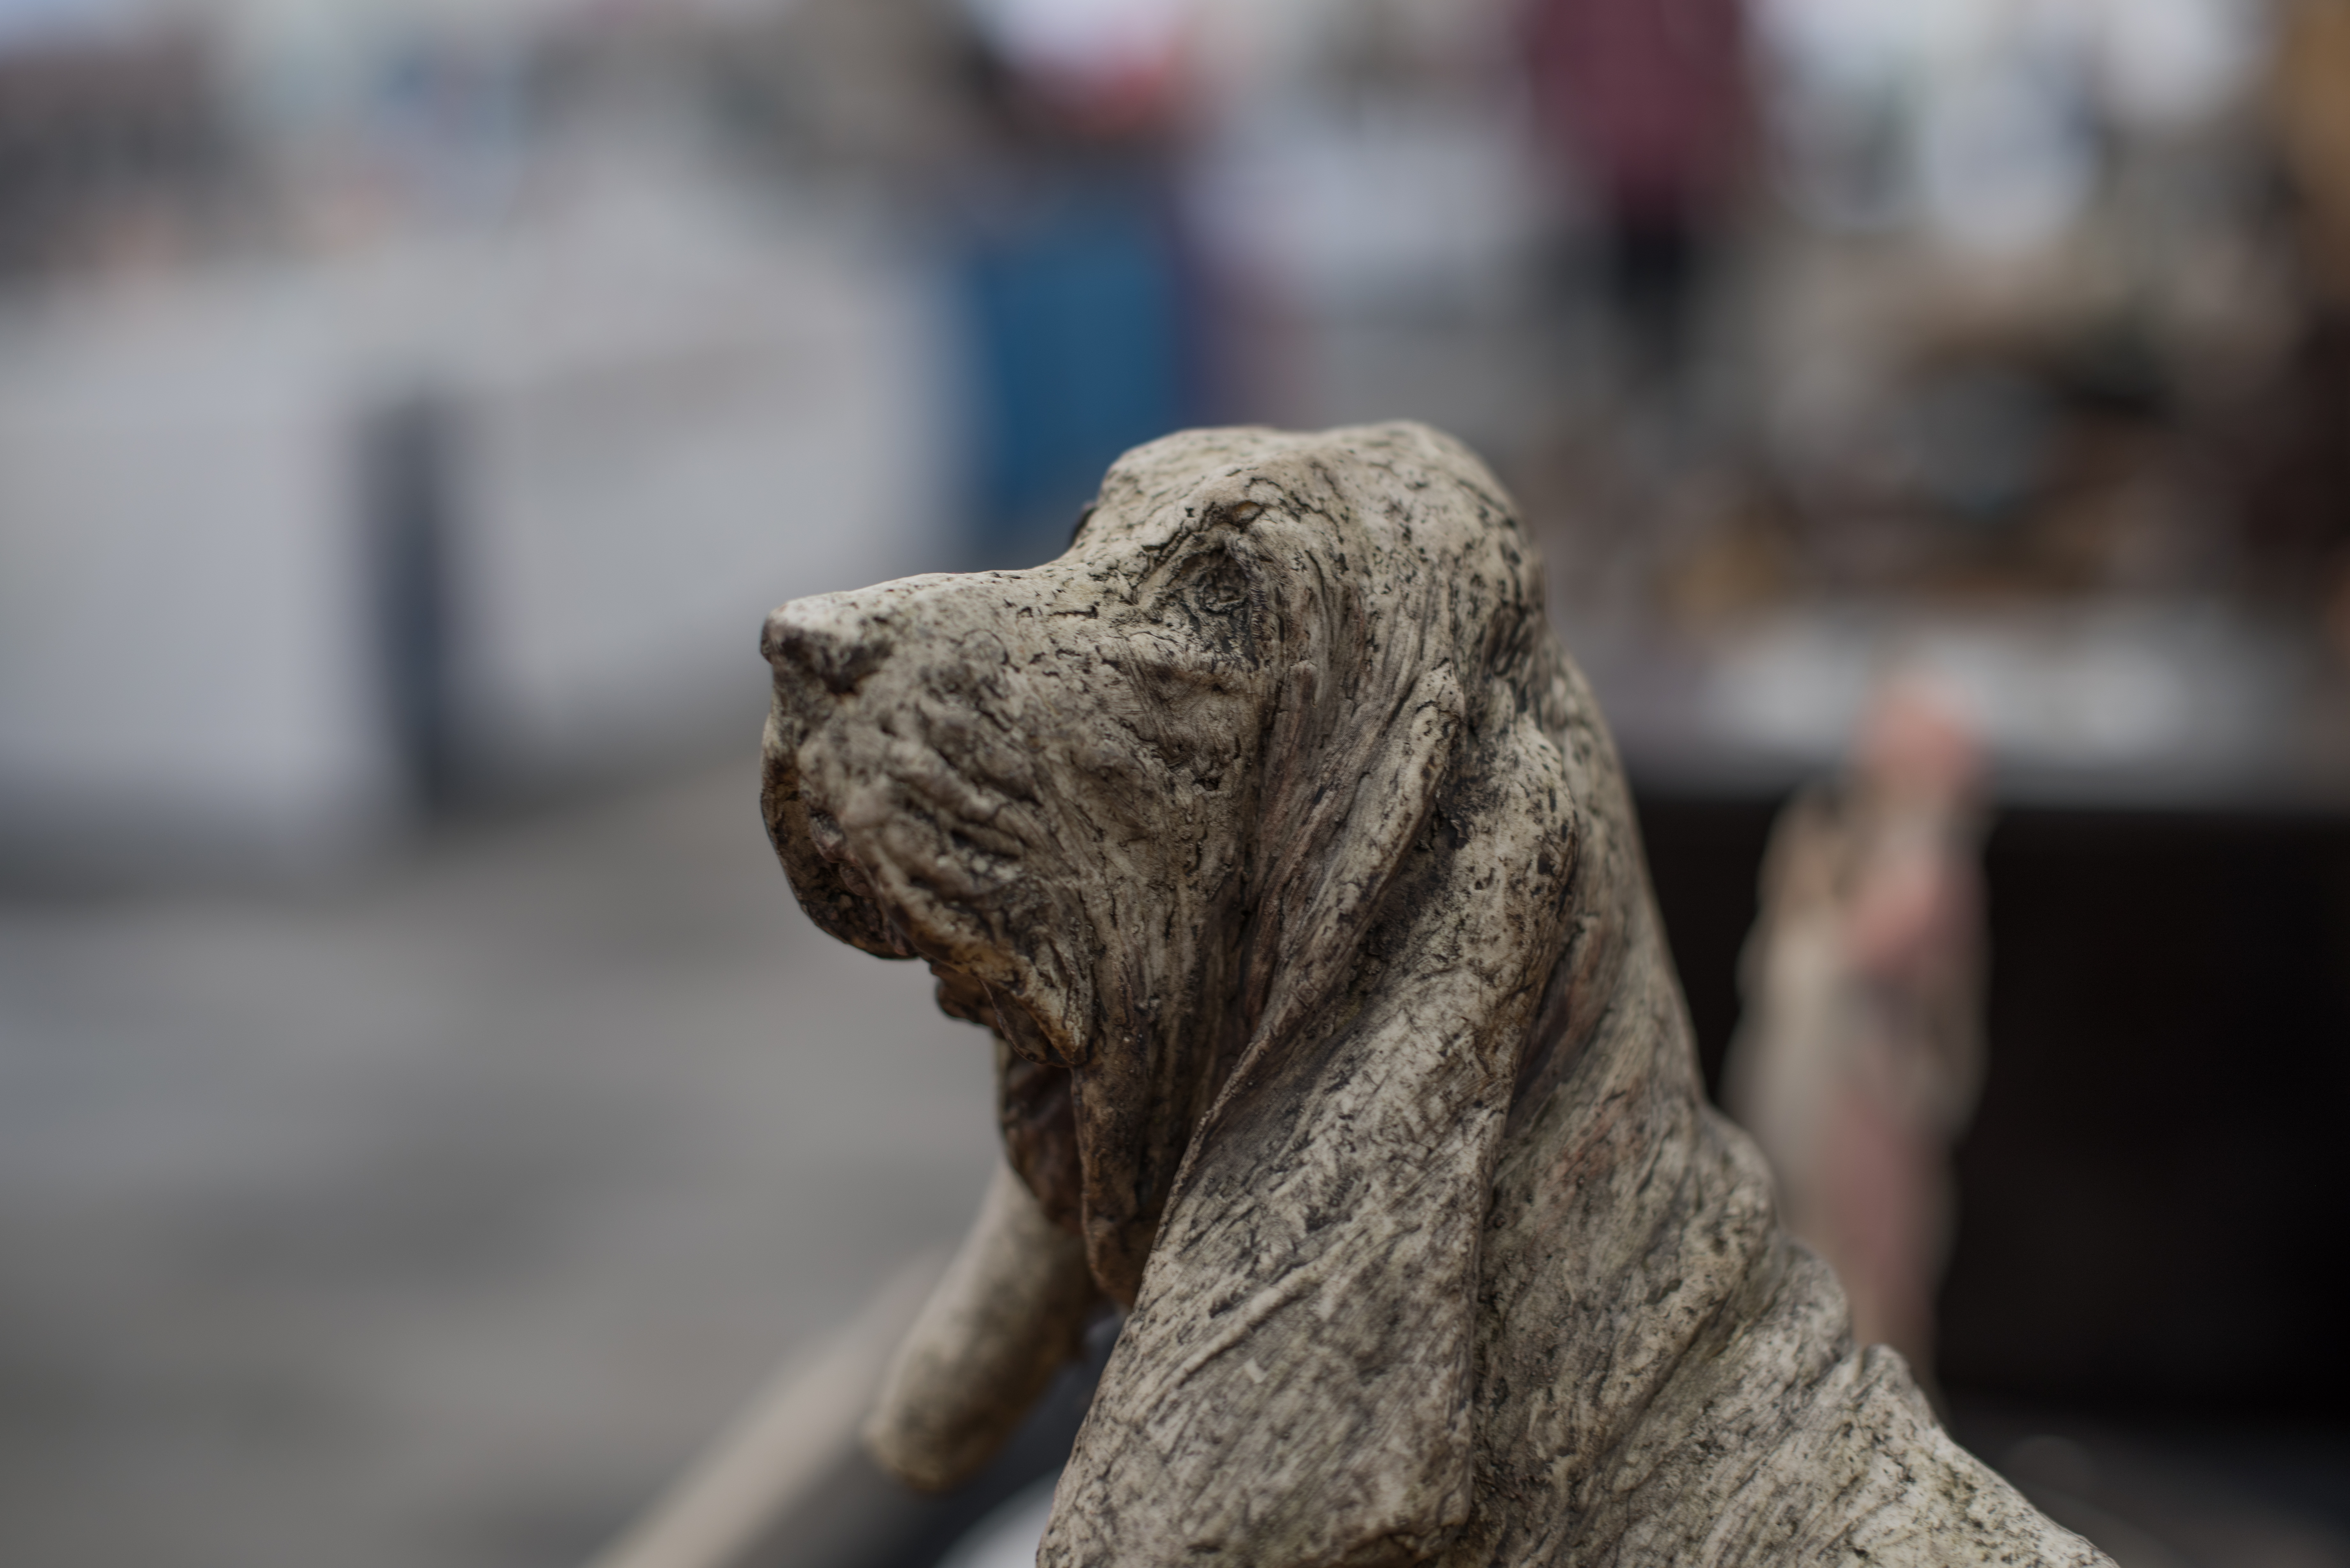 A stone dog ornament on display at Stockton Chic Vintique 6th April 2019